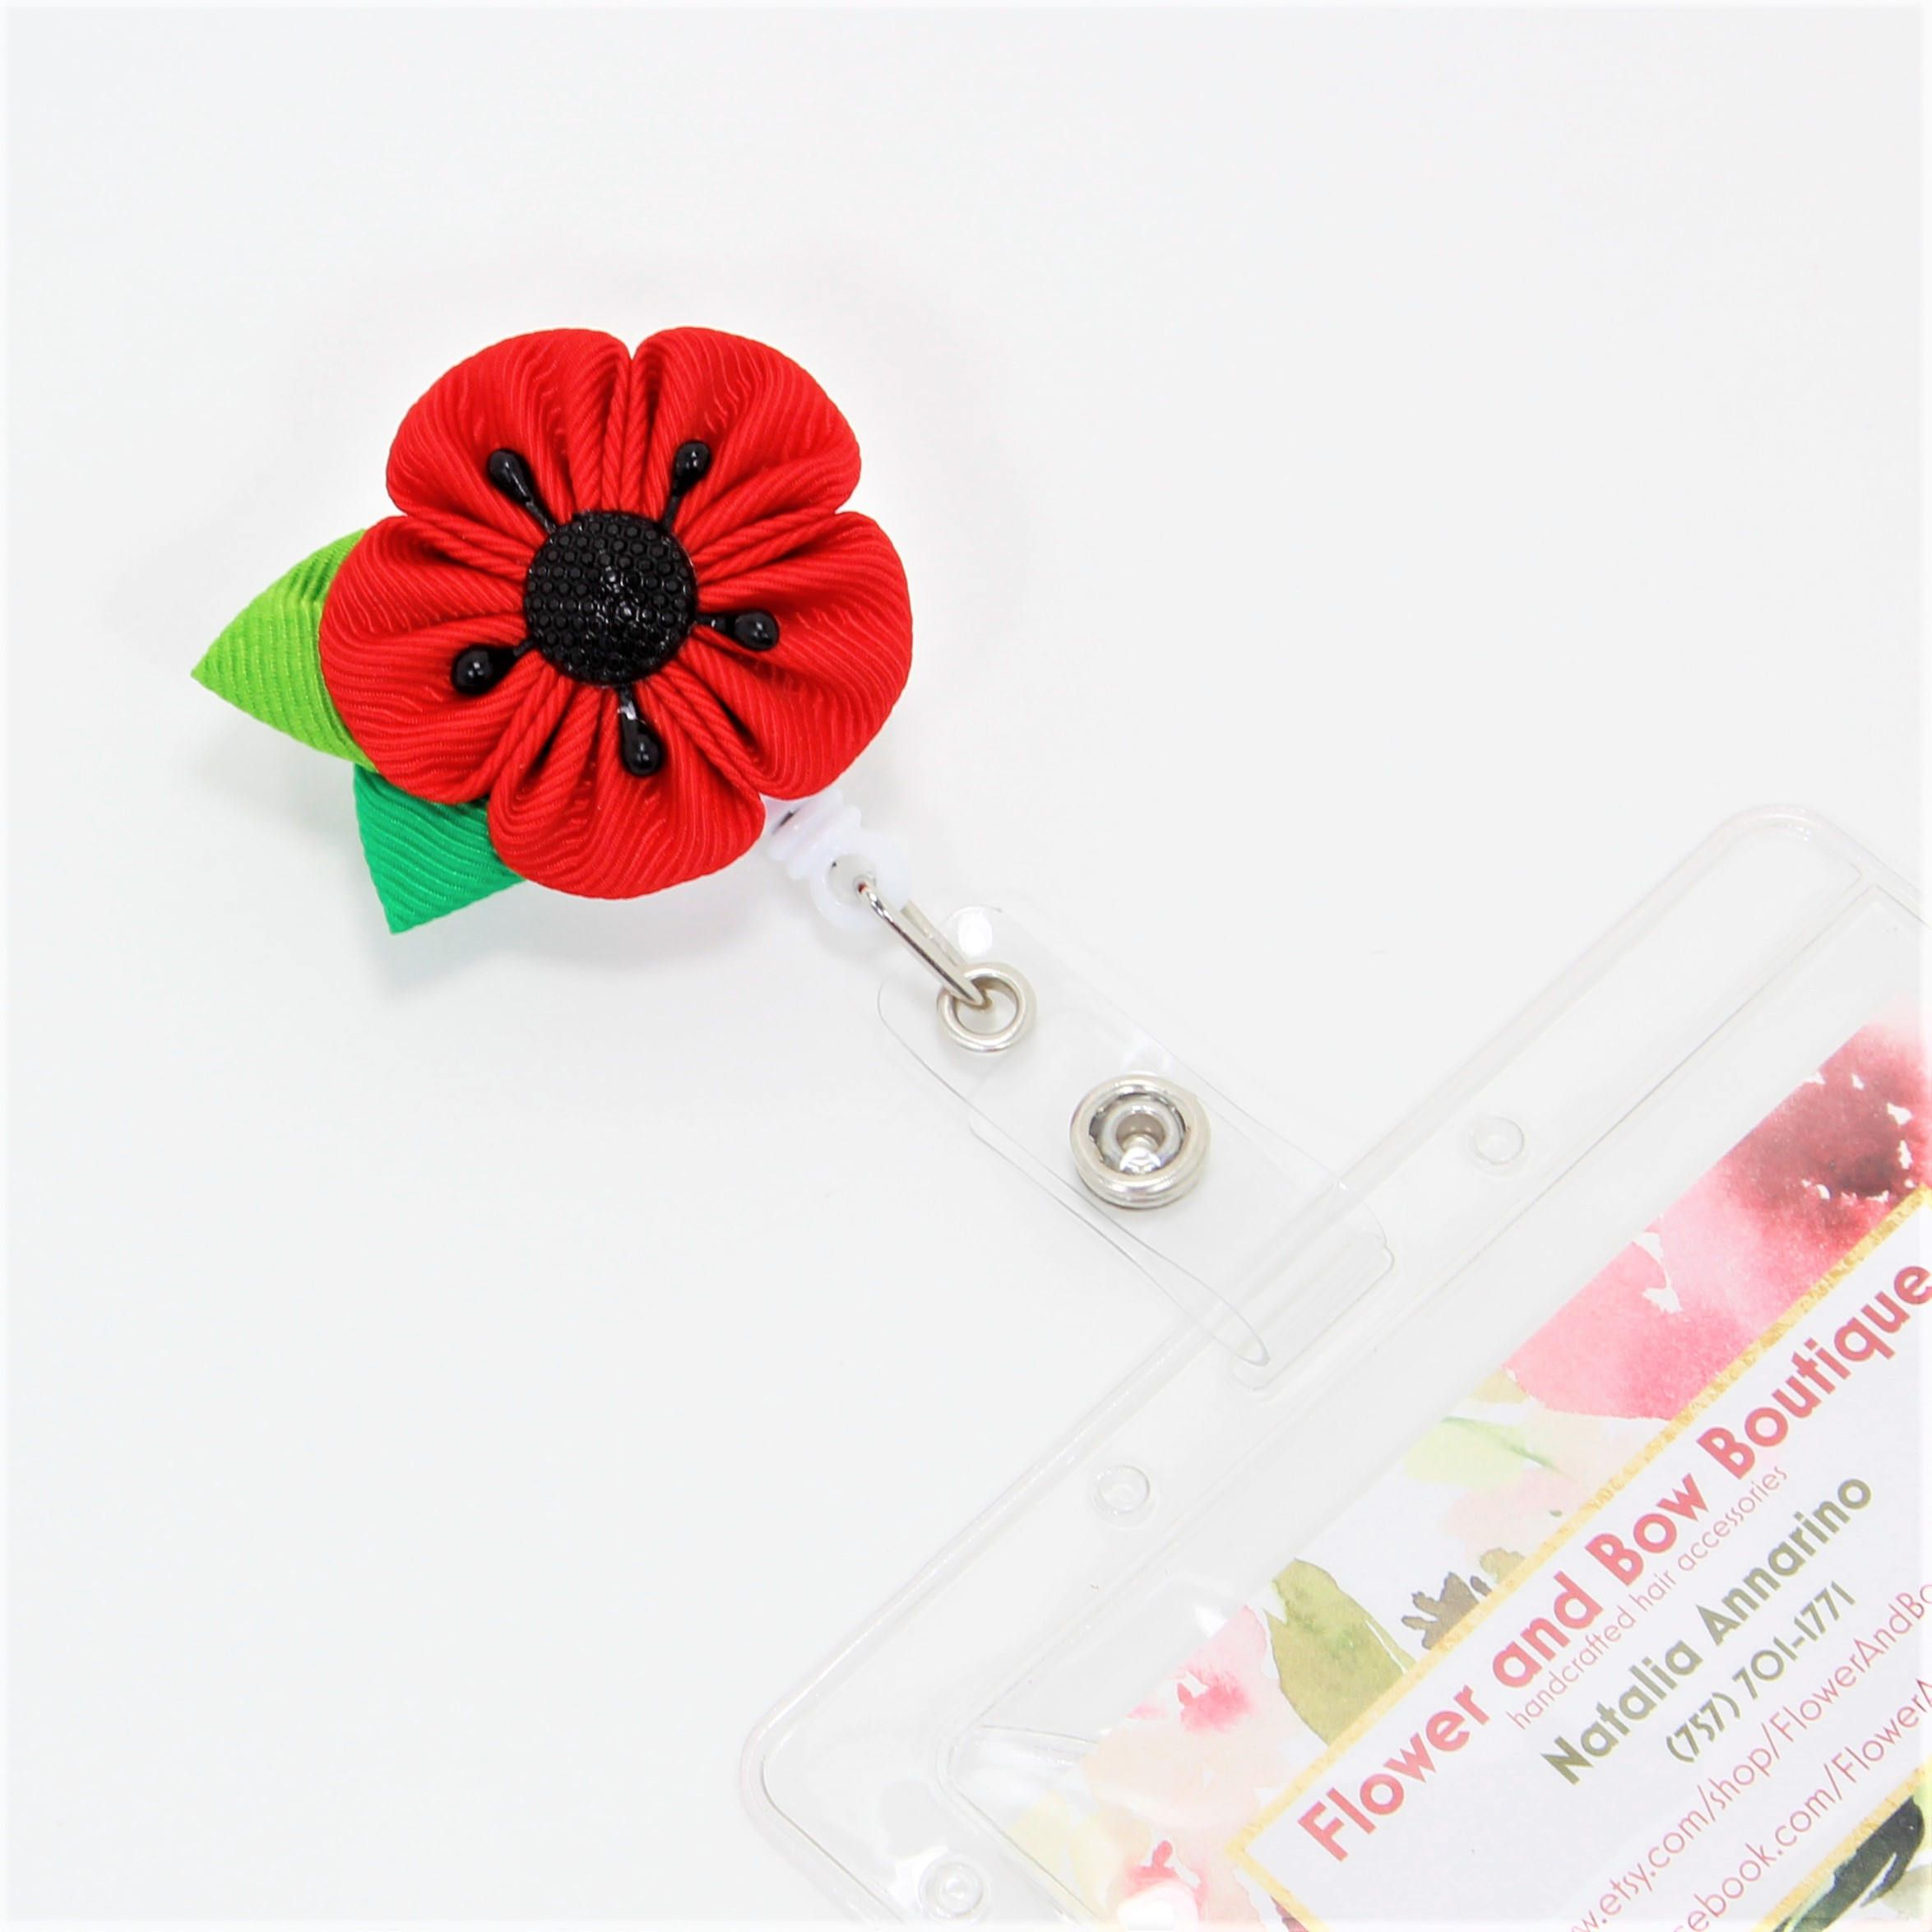 Flower id holder poppy badge reel nurse badge reel flower badge reel flower id holder poppy badge reel nurse badge reel flower badge reel teacher appreciation gift poppy mightylinksfo